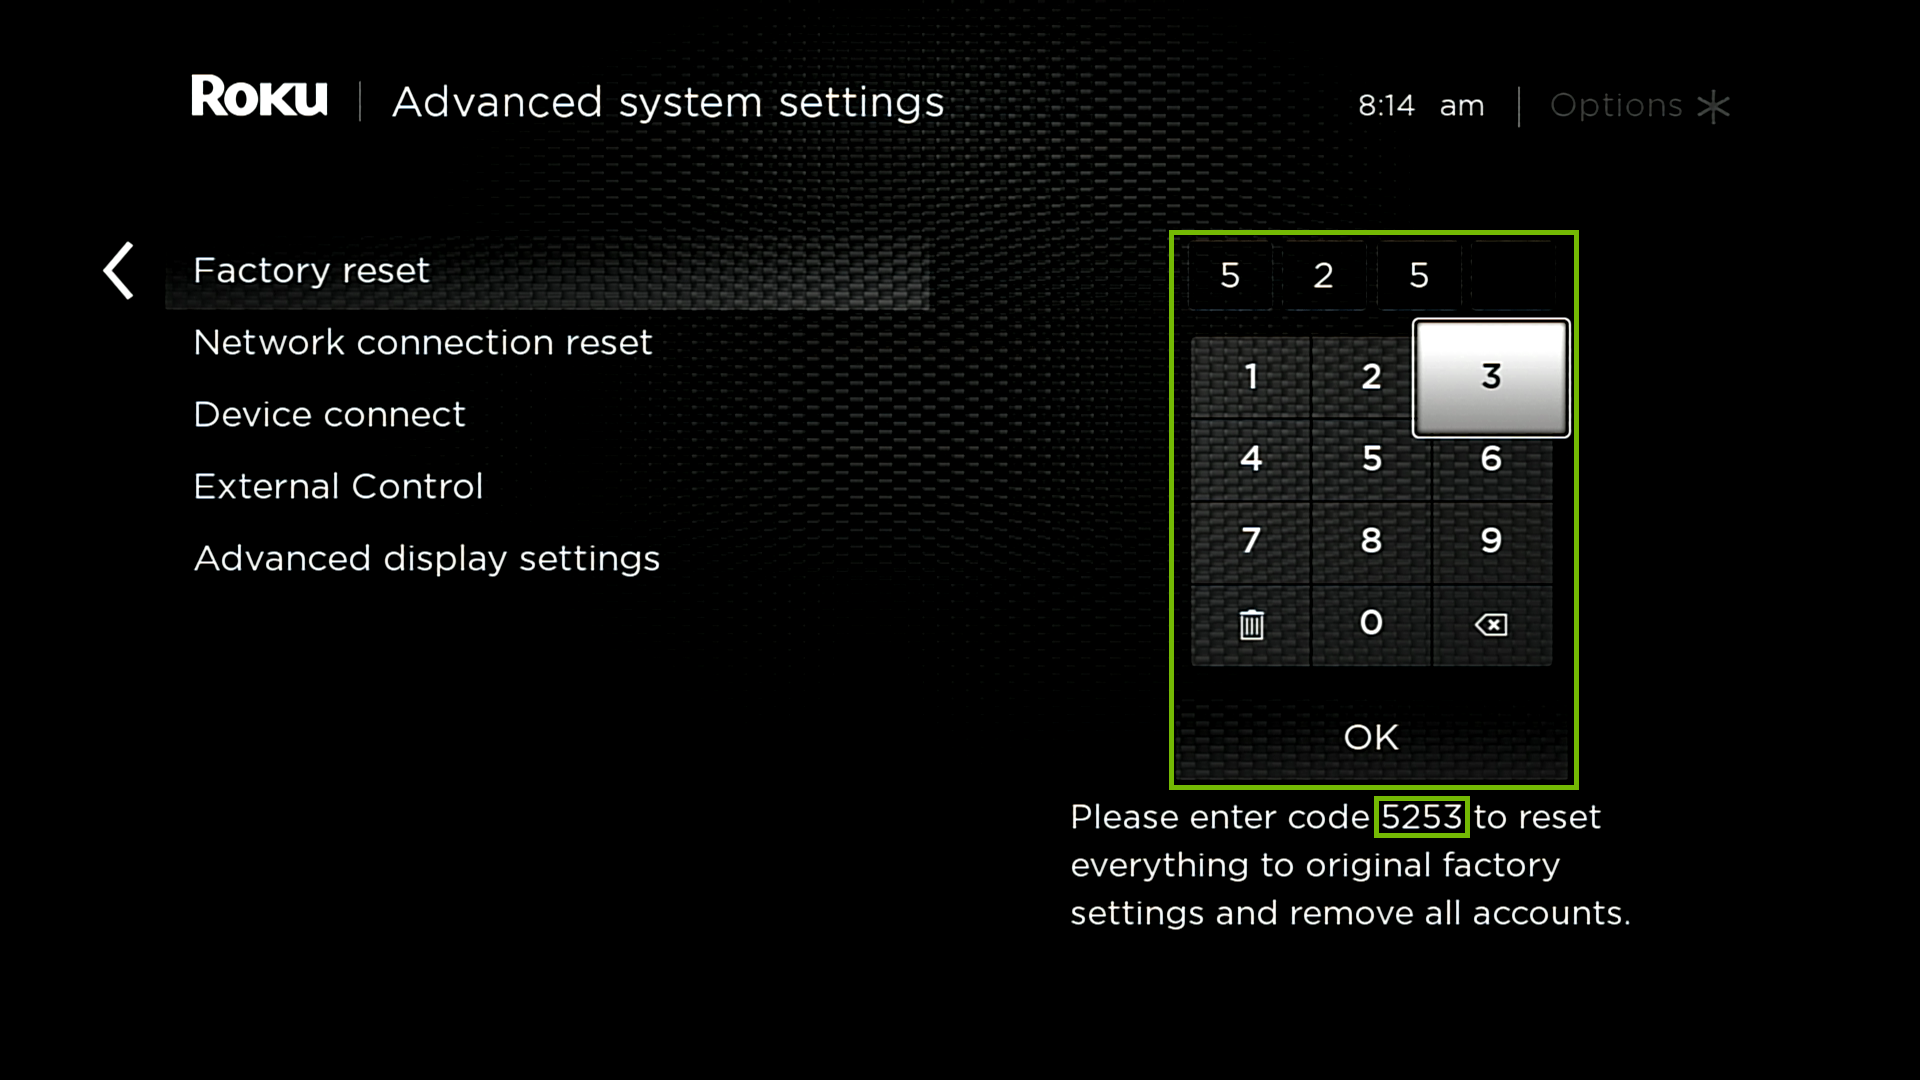 Advanced system settings factory reset with code highlighted on bottom right and number entry area highlighted.